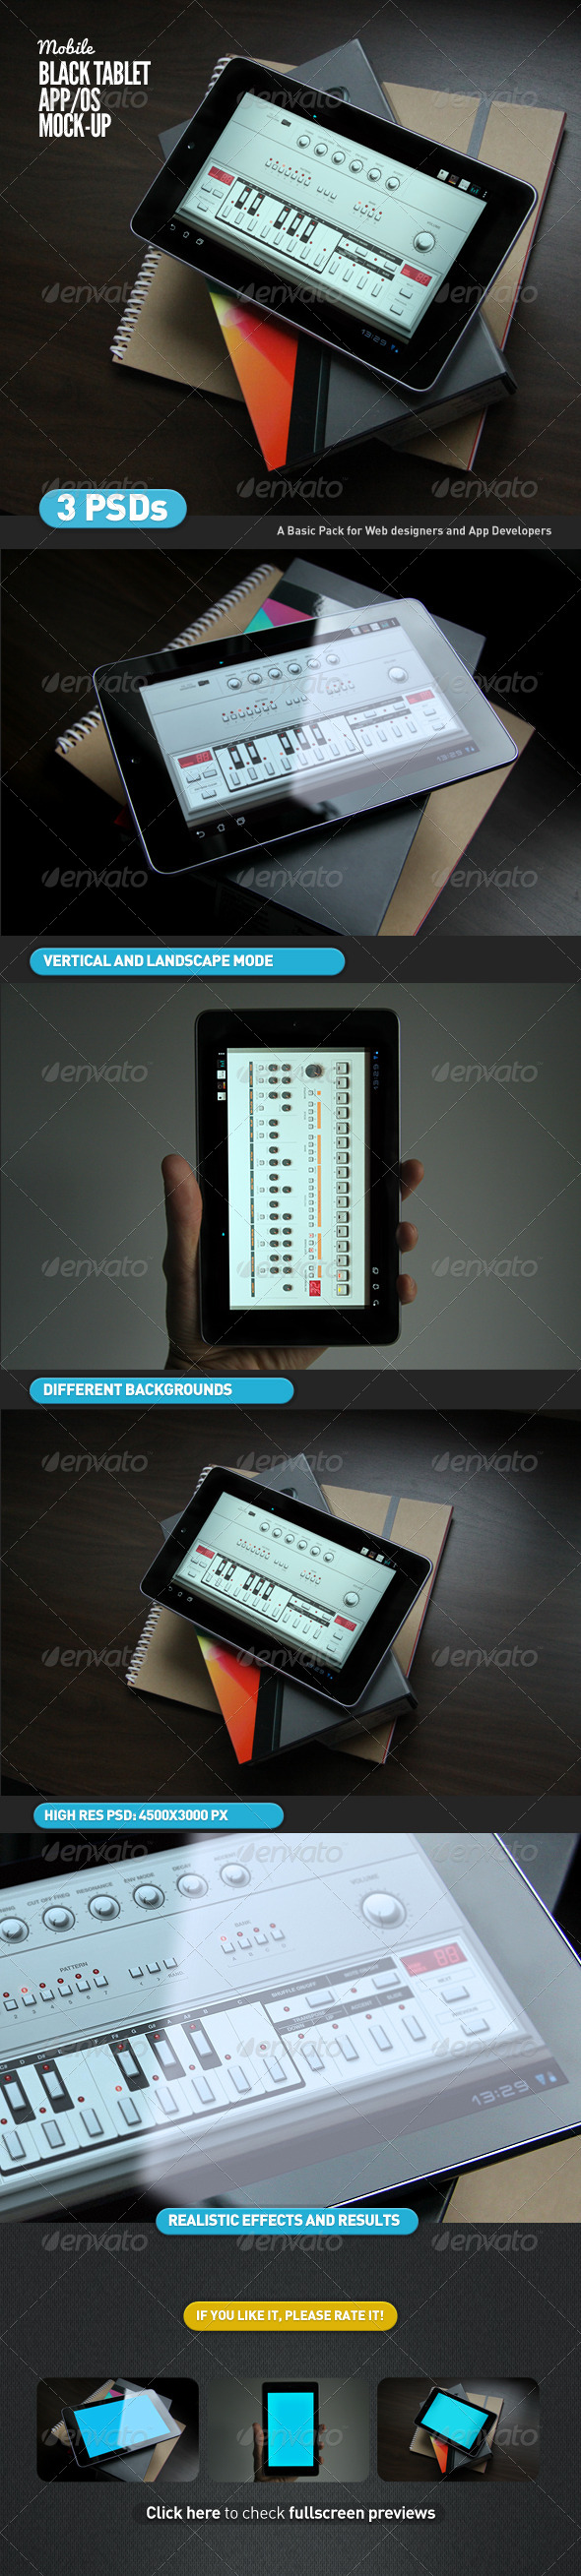 Black Tablet | Android GUI App Mock-Up - Mobile Displays